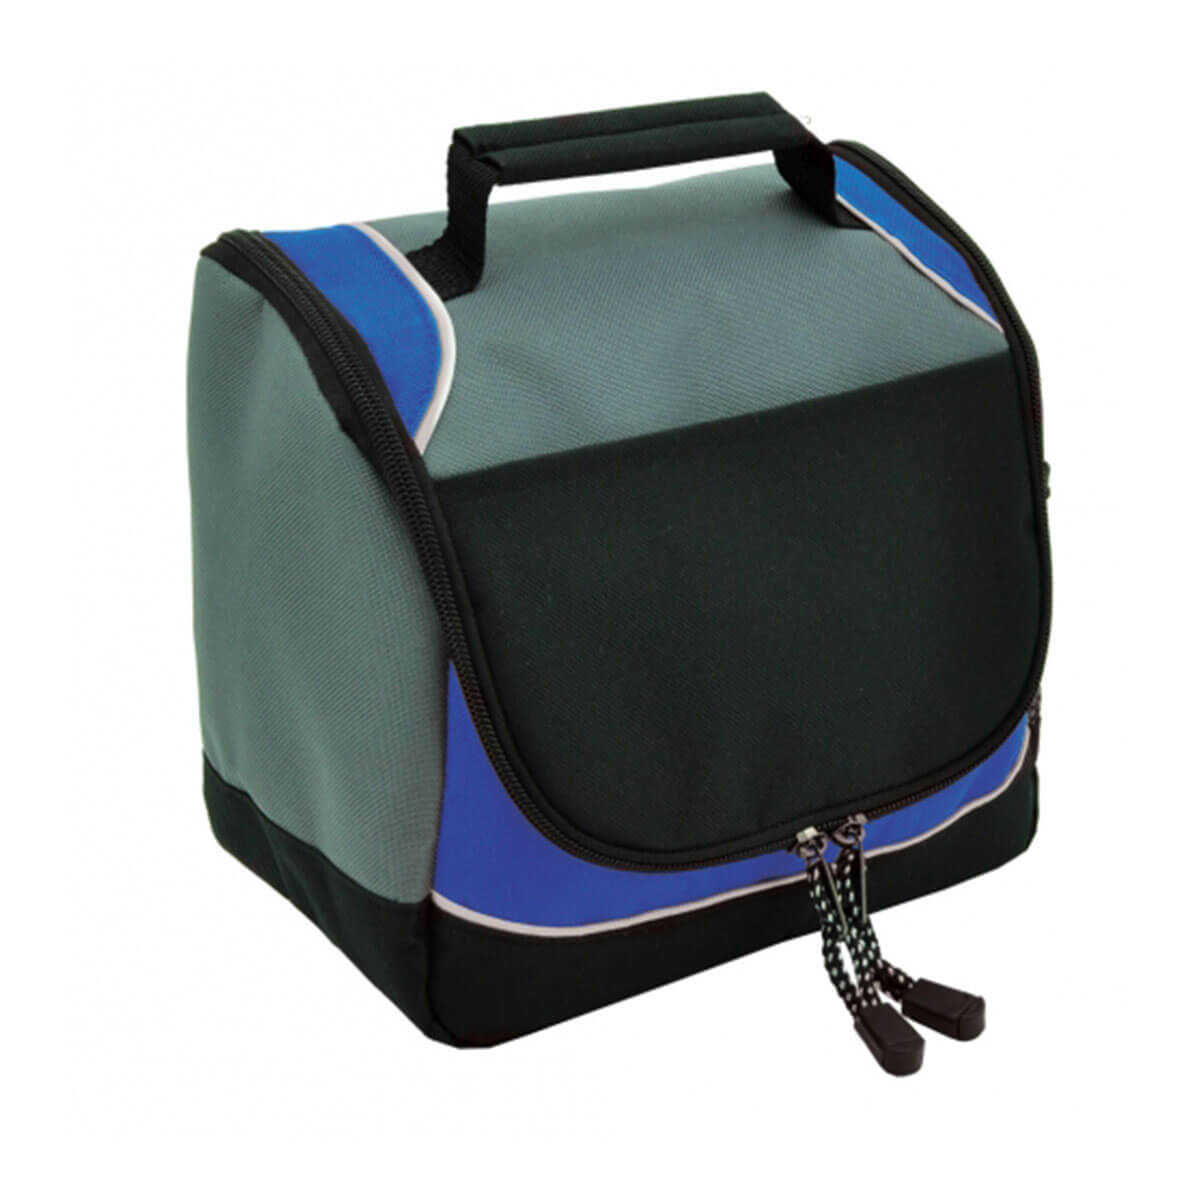 Rydges cooler bag-Black / Royal / White / Charcoal